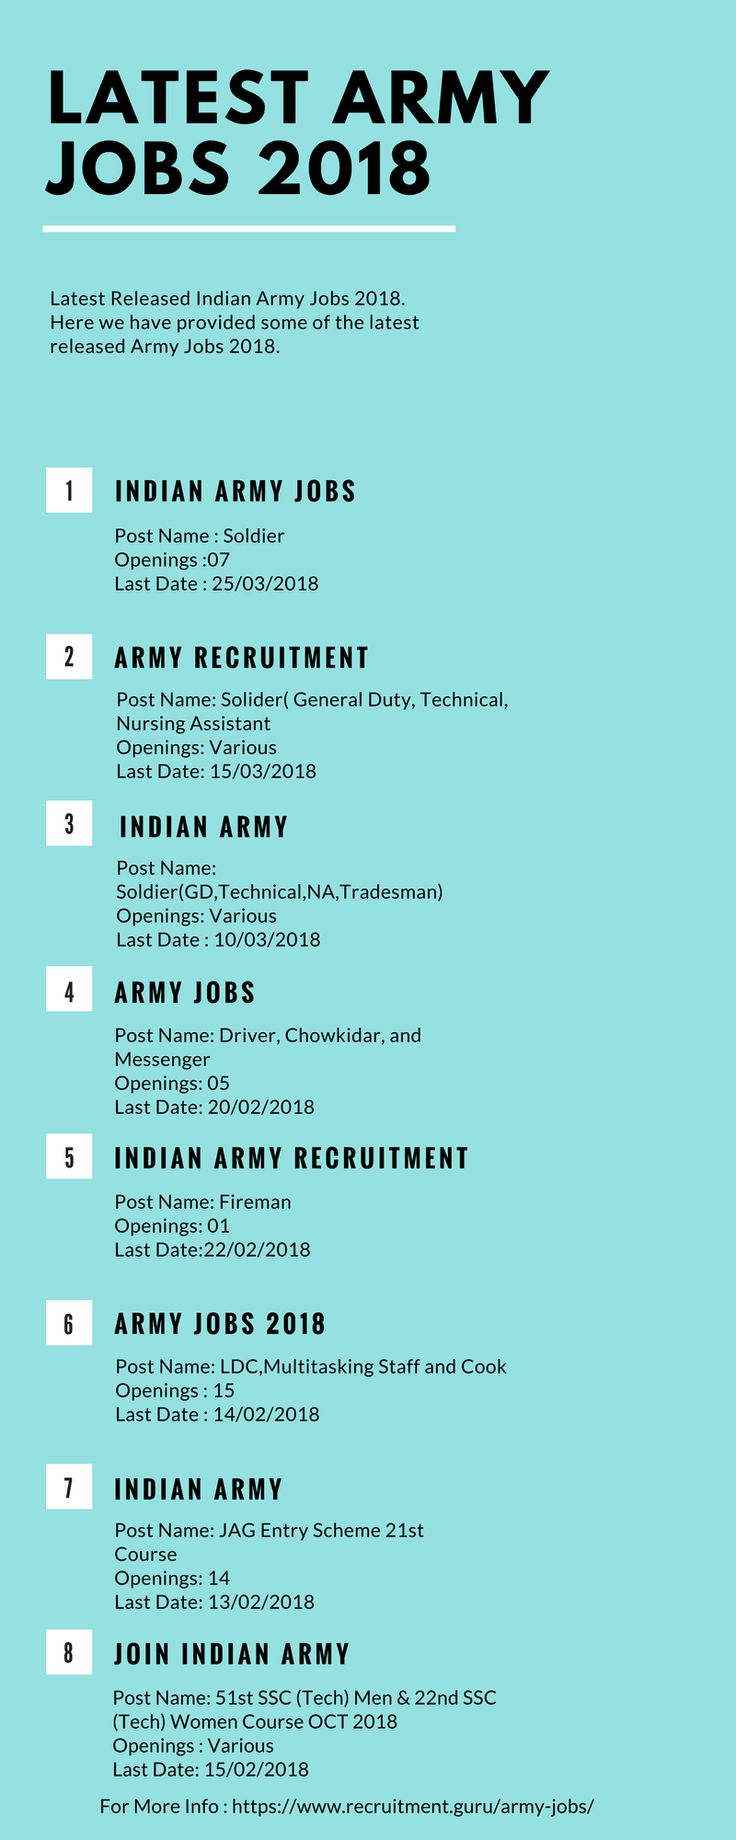 Indian Army Jobs 2018. Latest Released Army Jobs 2018.